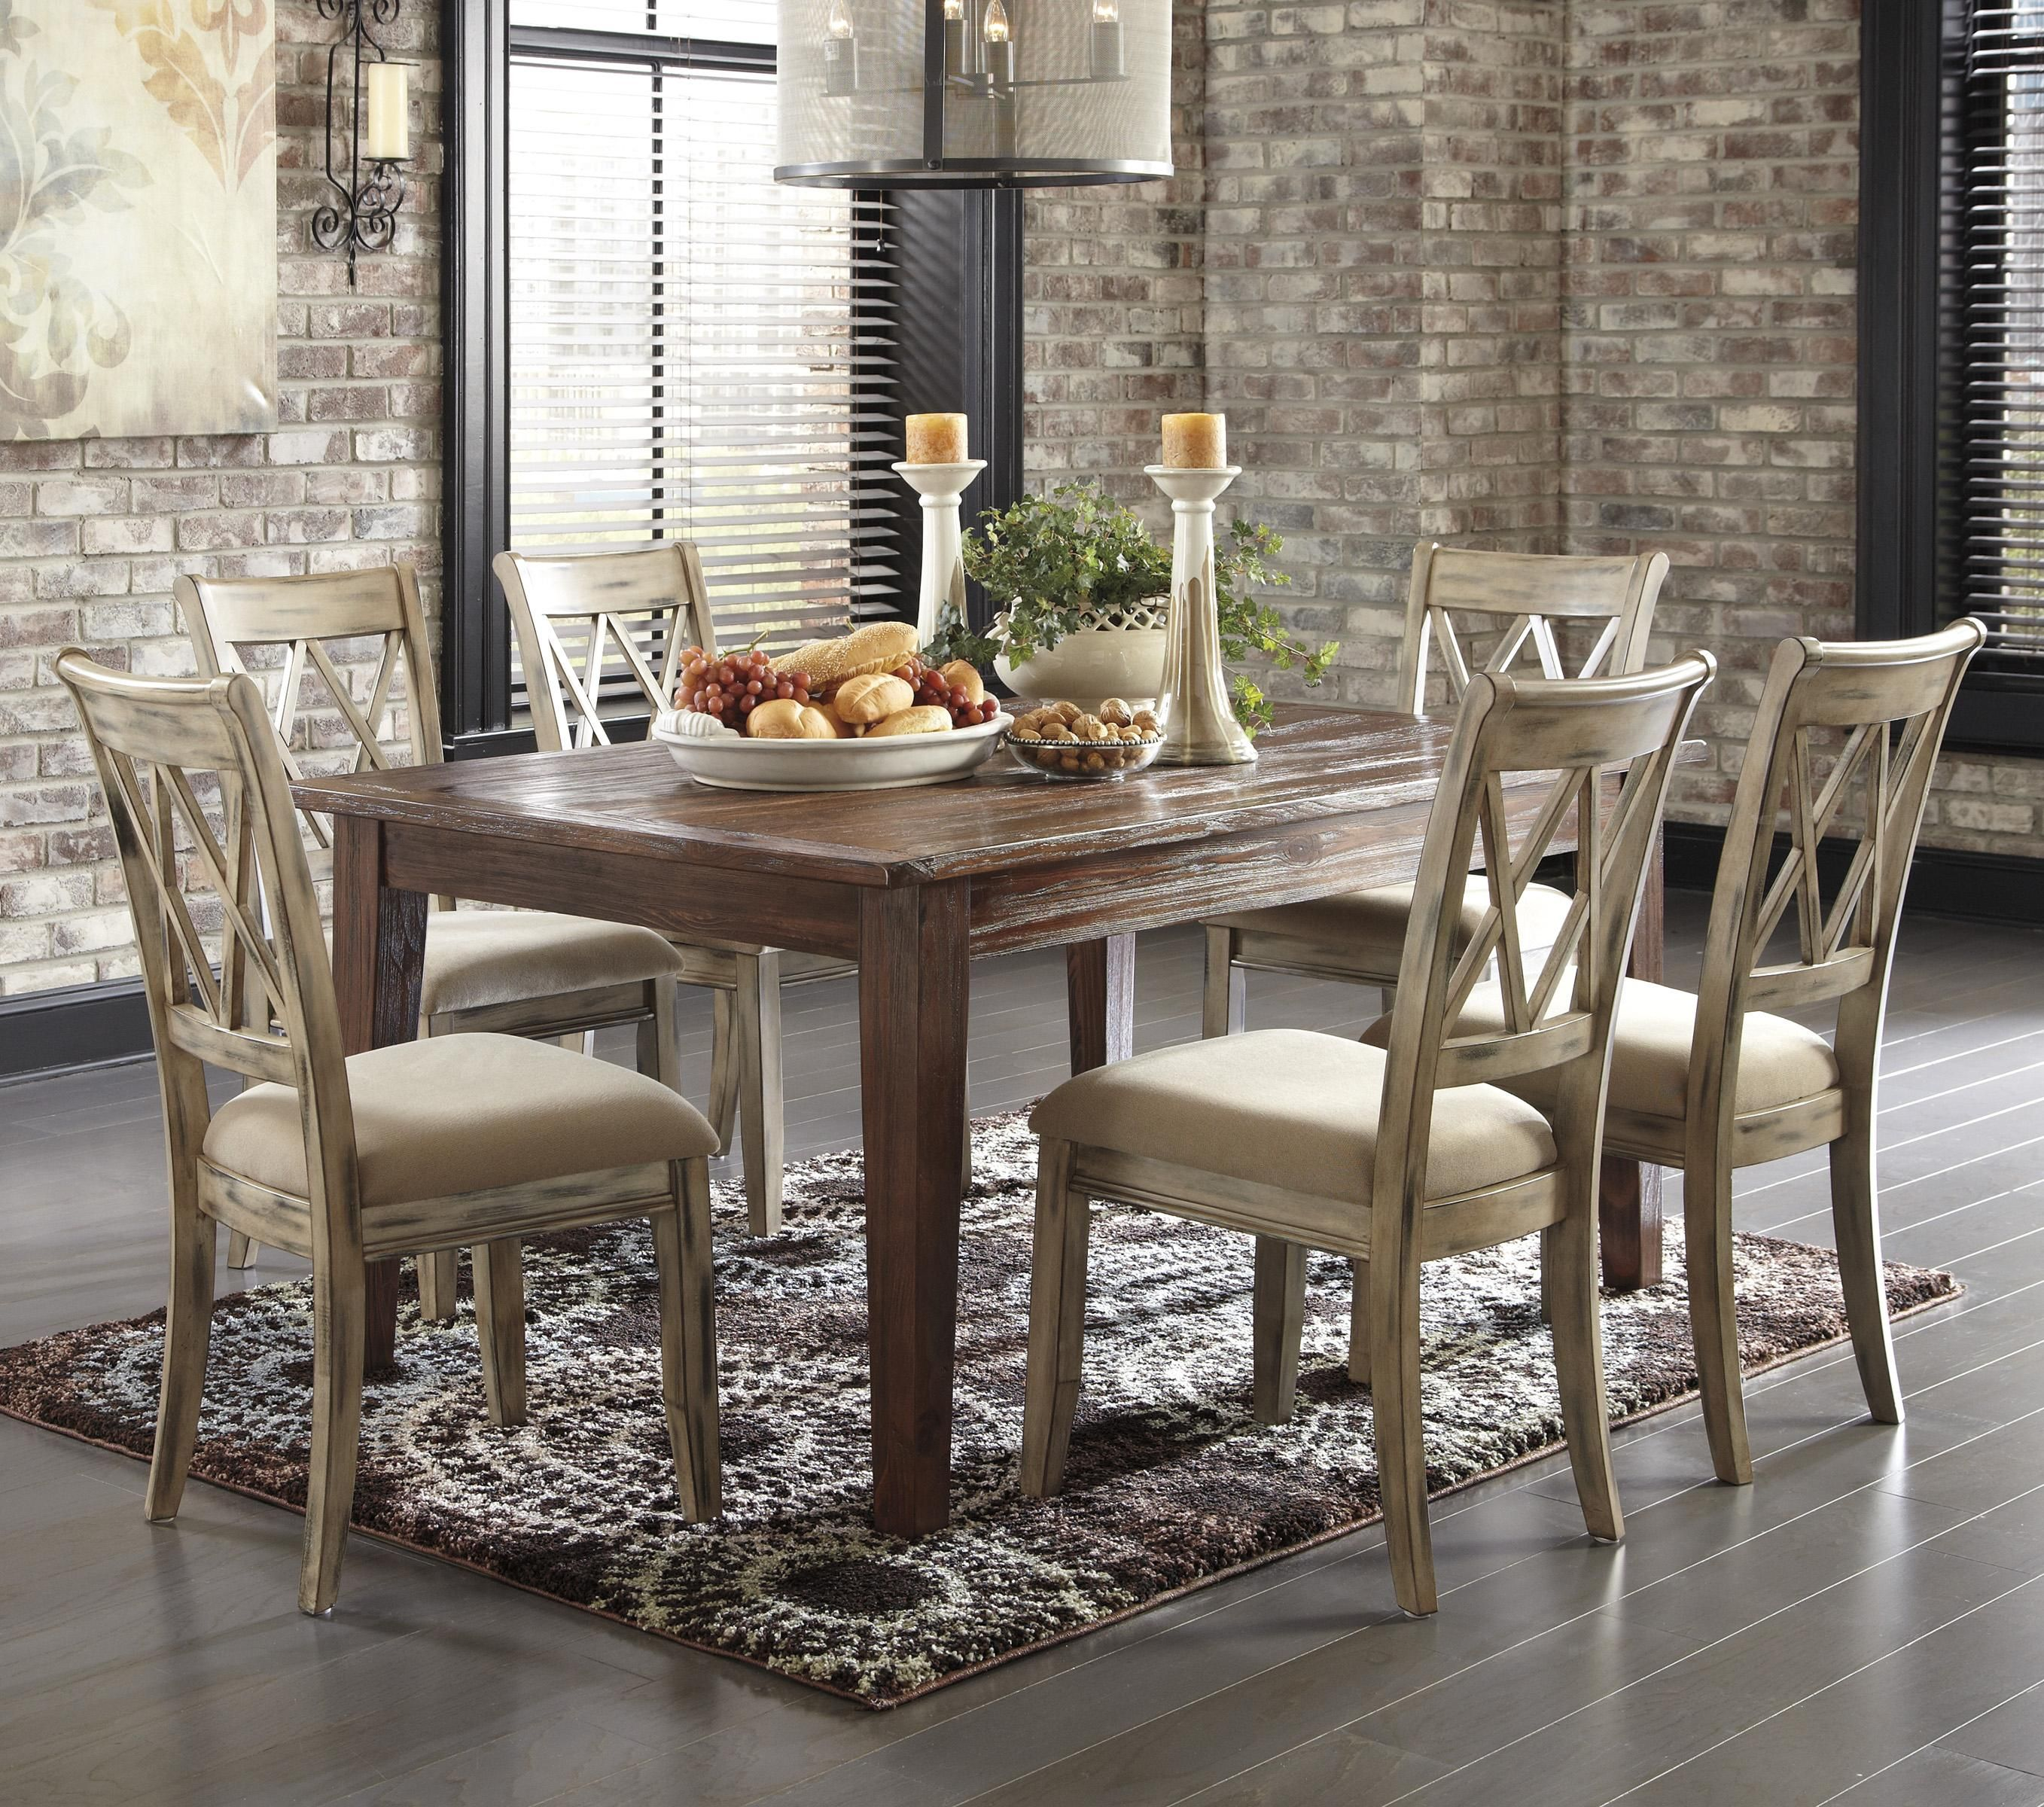 Dining room table with antique white chairs